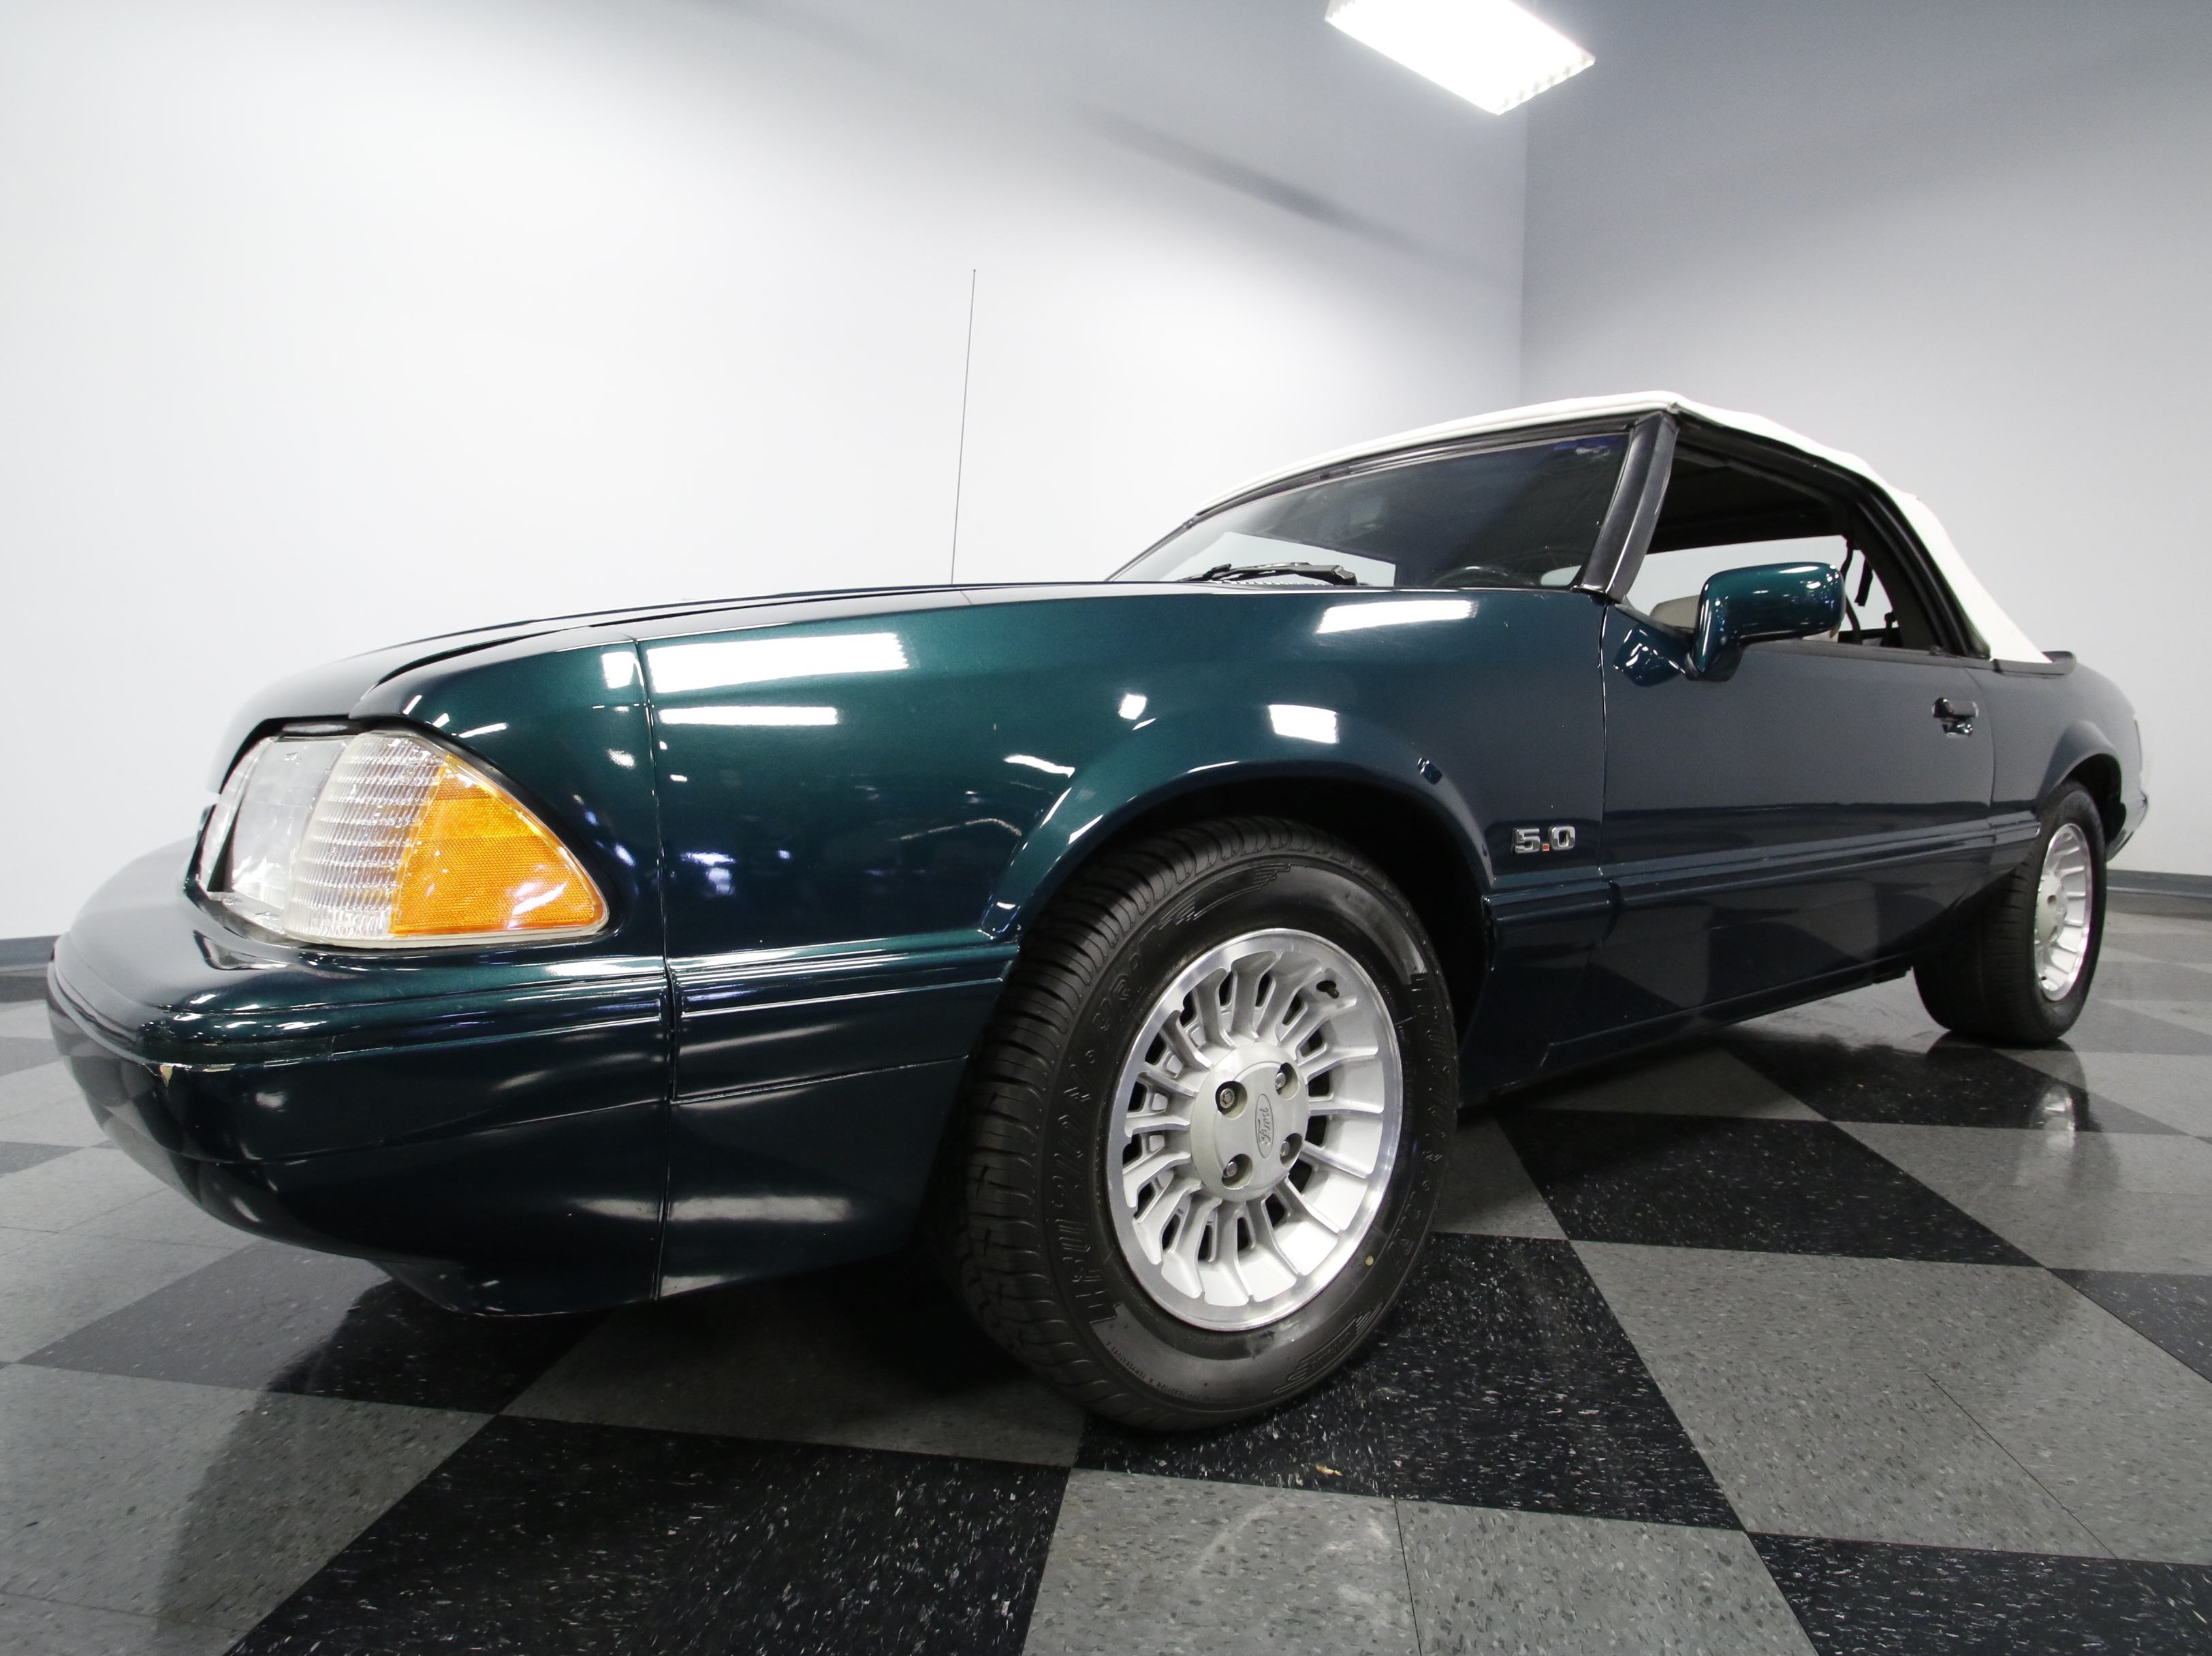 4241-CHA | 1990 Ford Mustang LX 7-UP Edition | Streetside Classics